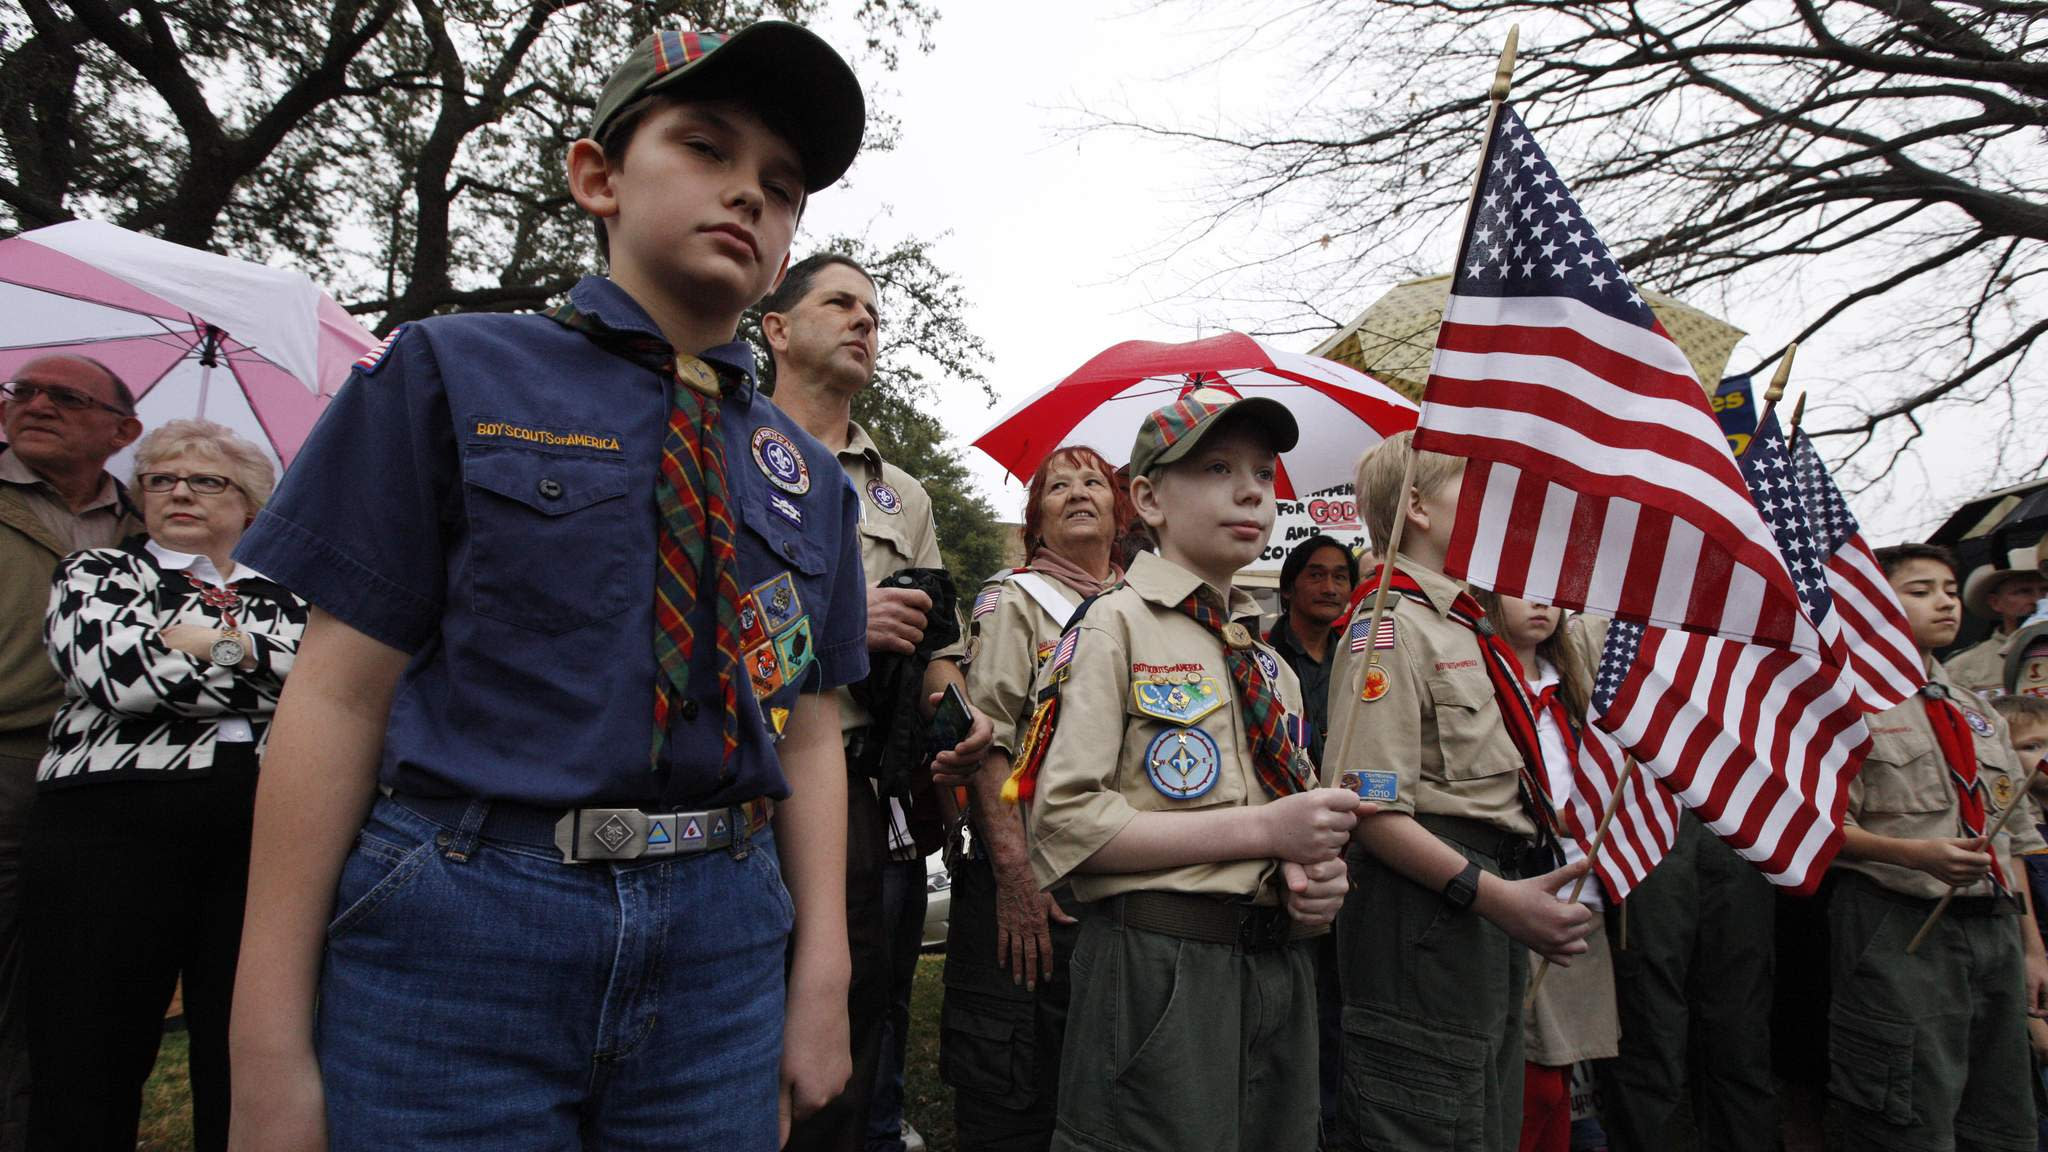 boyscout ban on gays